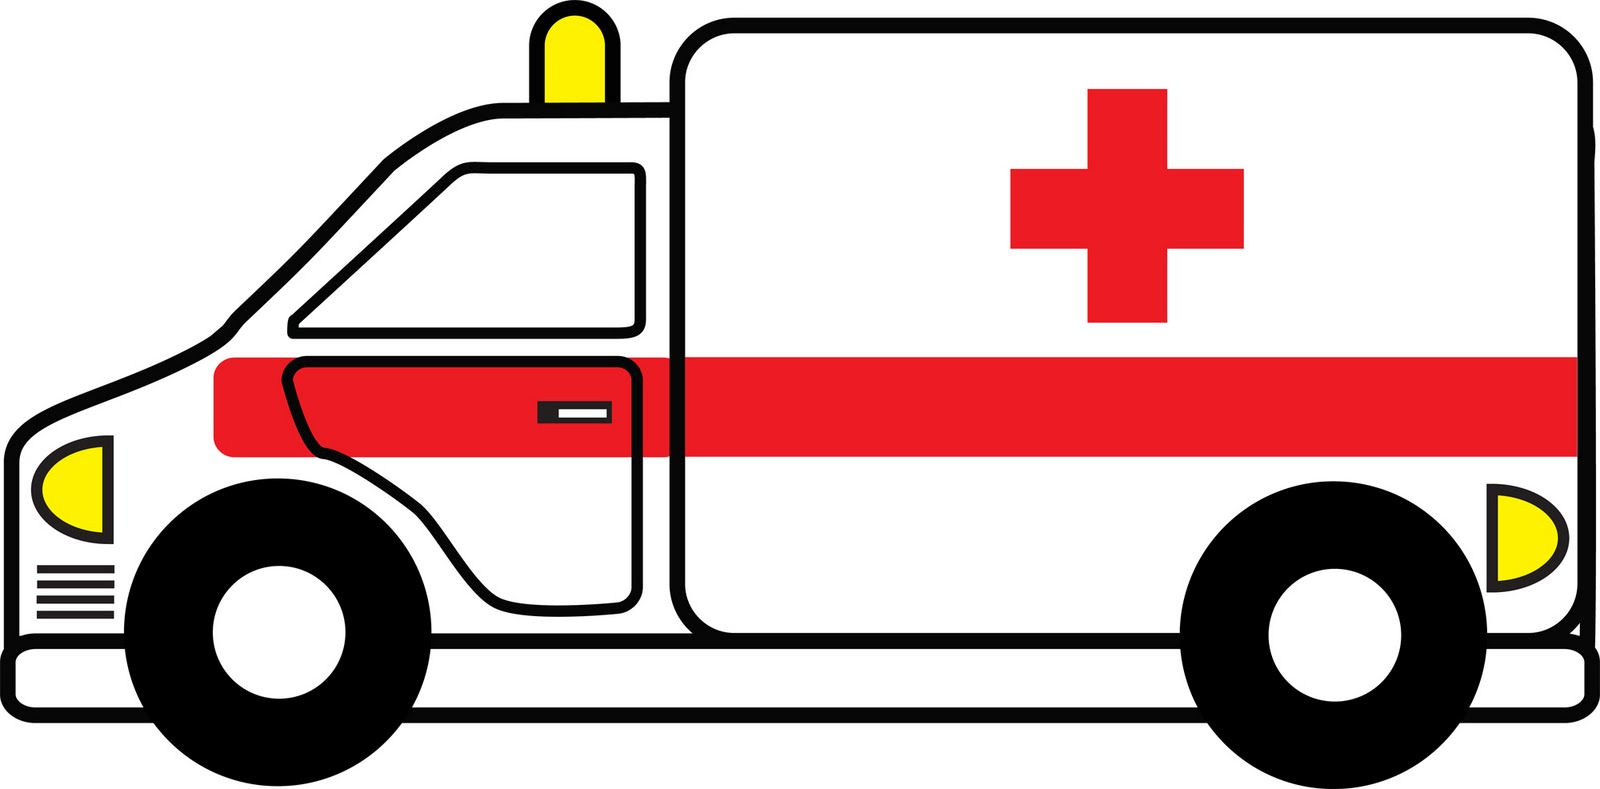 Ems . Ambulance clipart